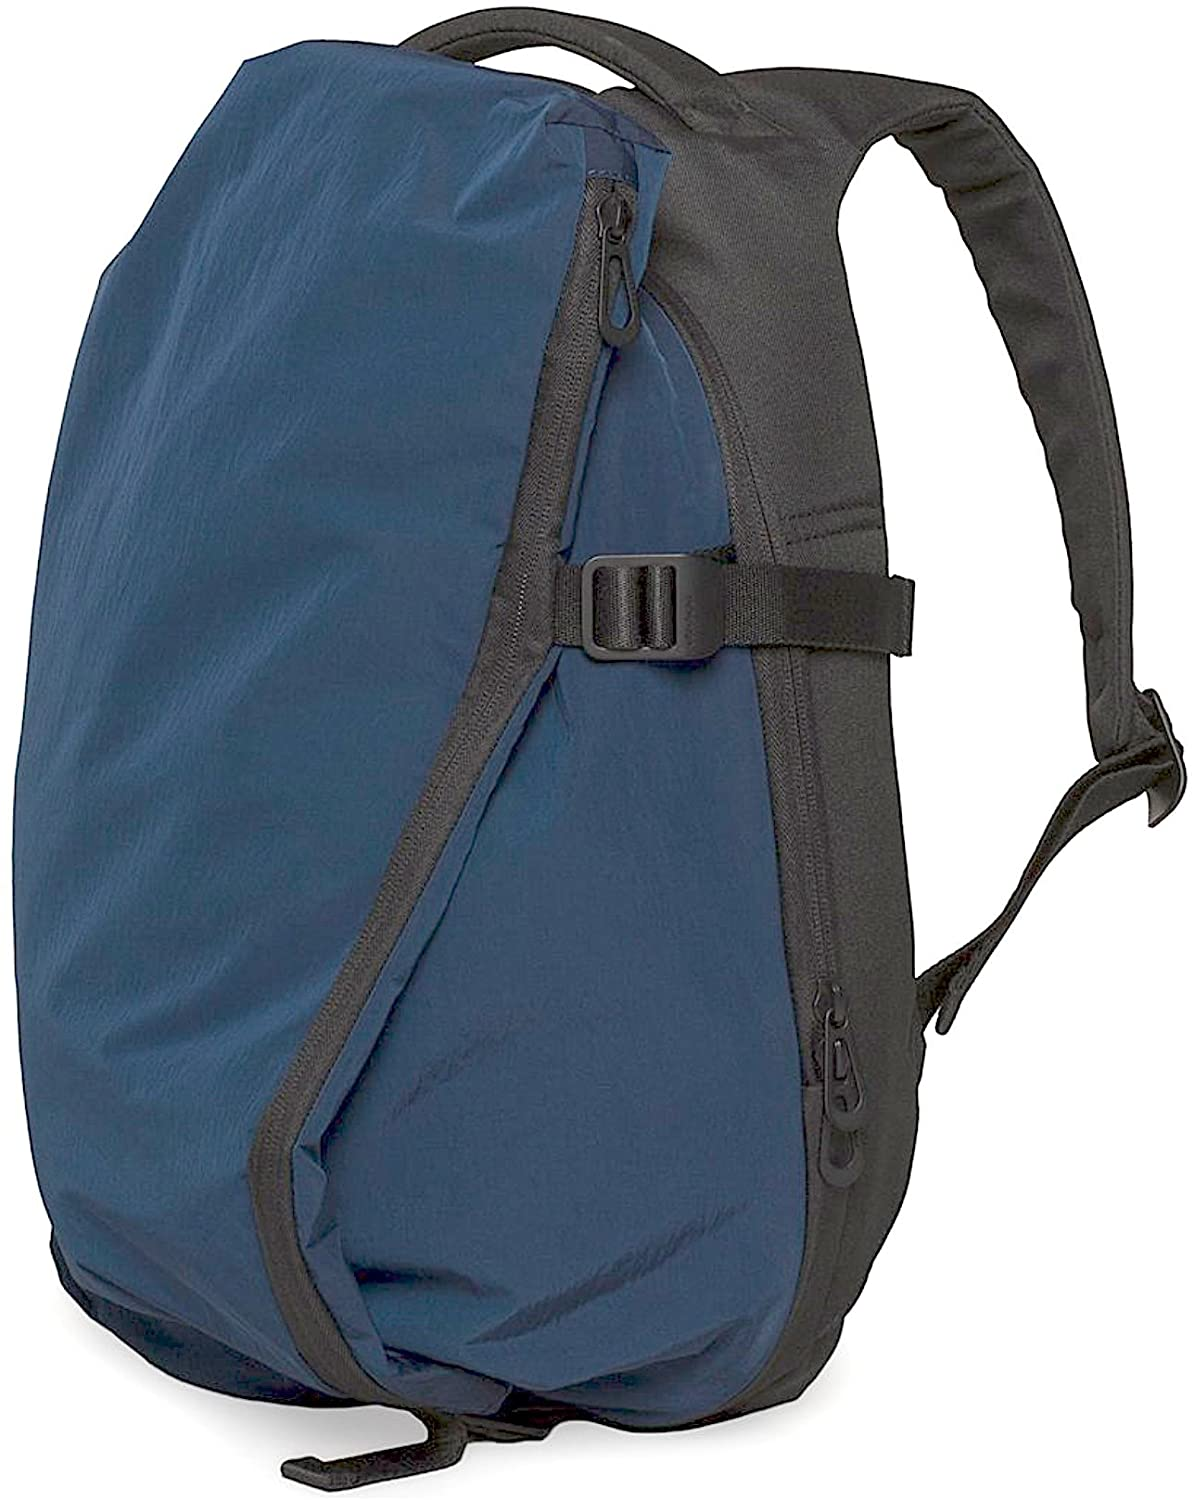 Cote&Ciel Isar Small Memory Tech Backpack - Midnight Blue